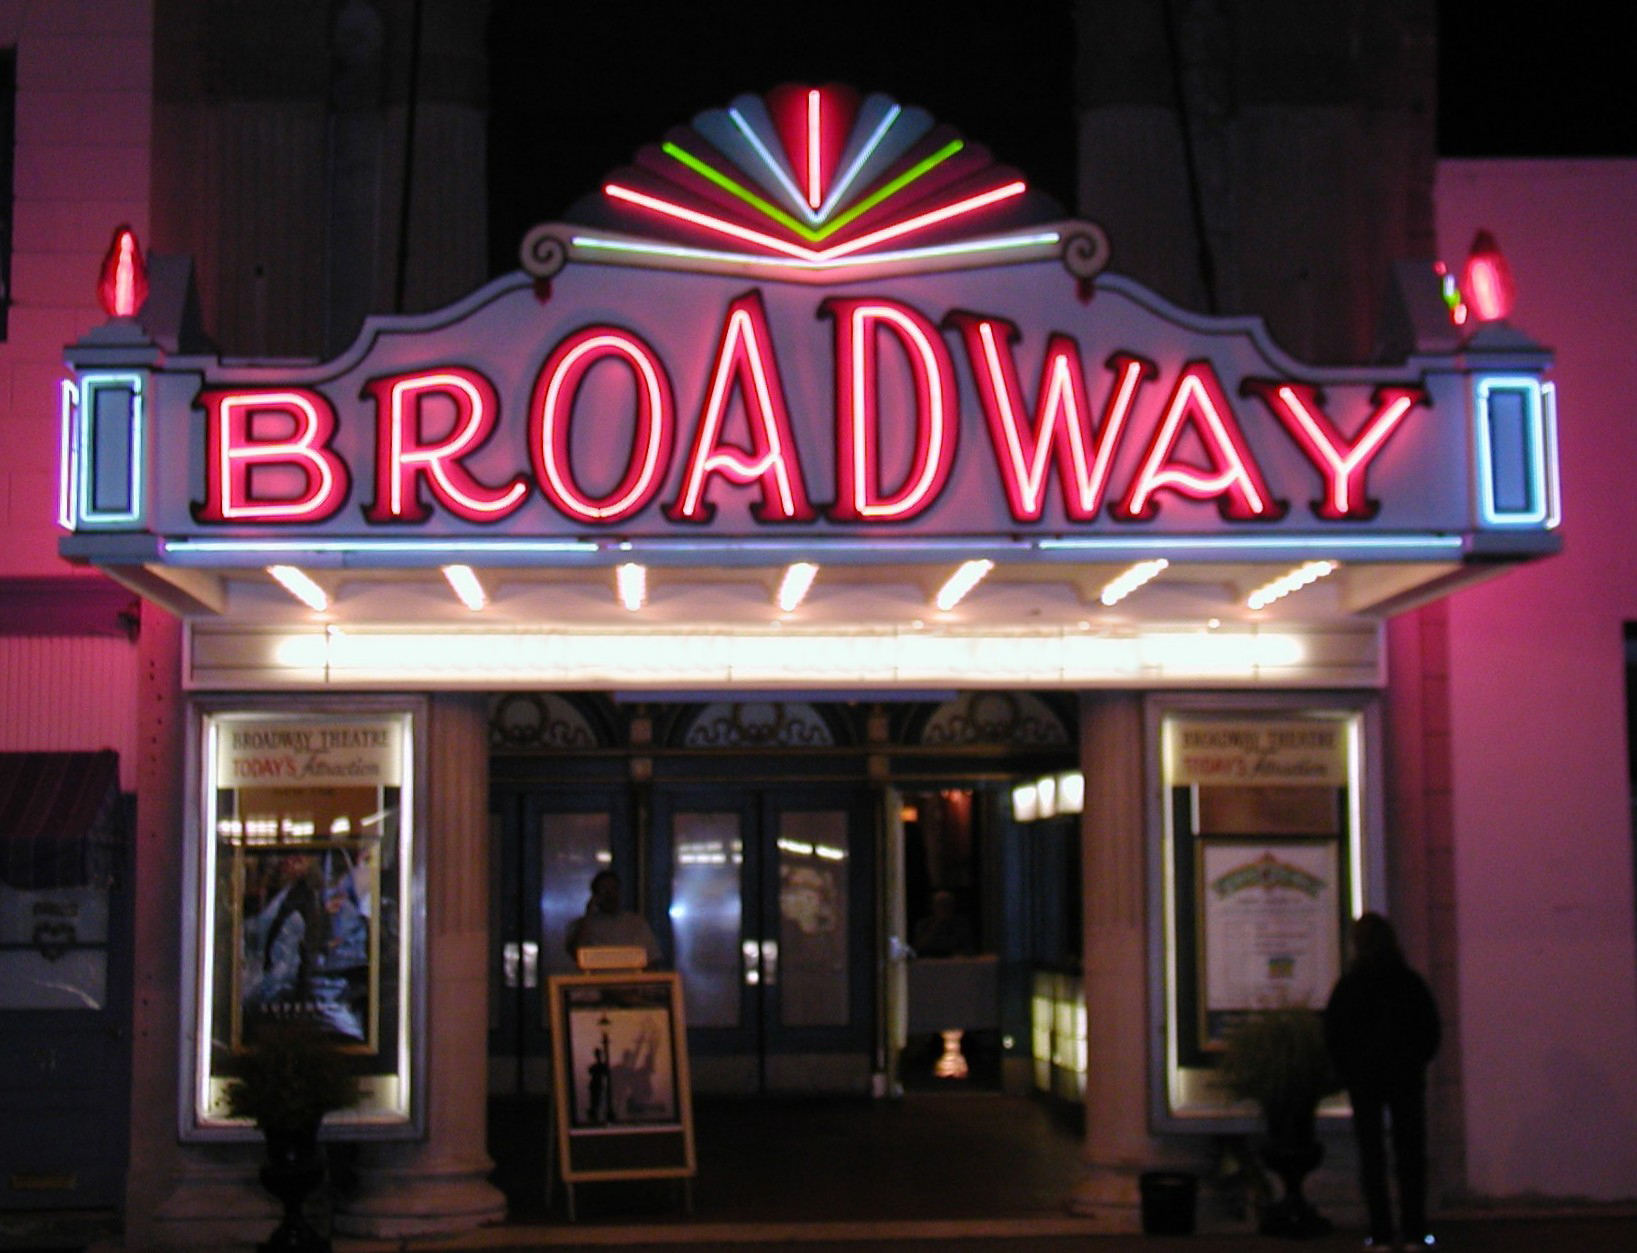 Neon Sign clipart broadway theatre First June The Broadway Since